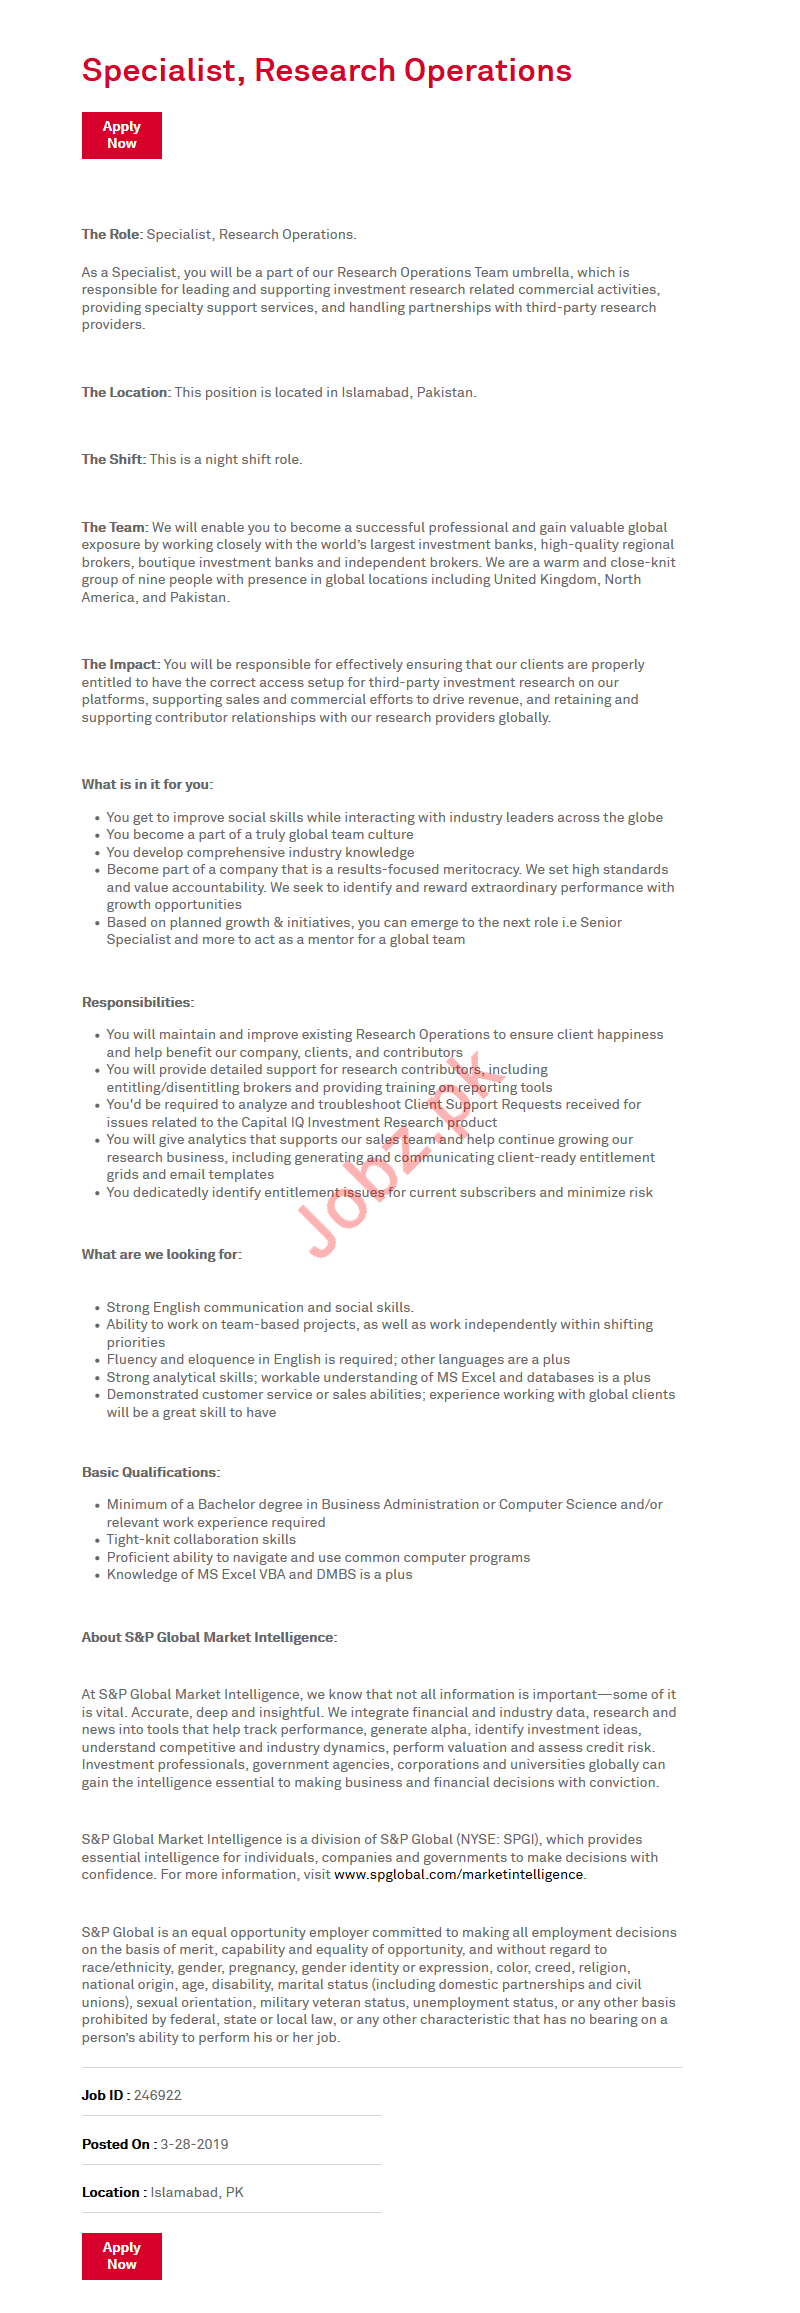 S&P Global Research Operations Jobs 2019